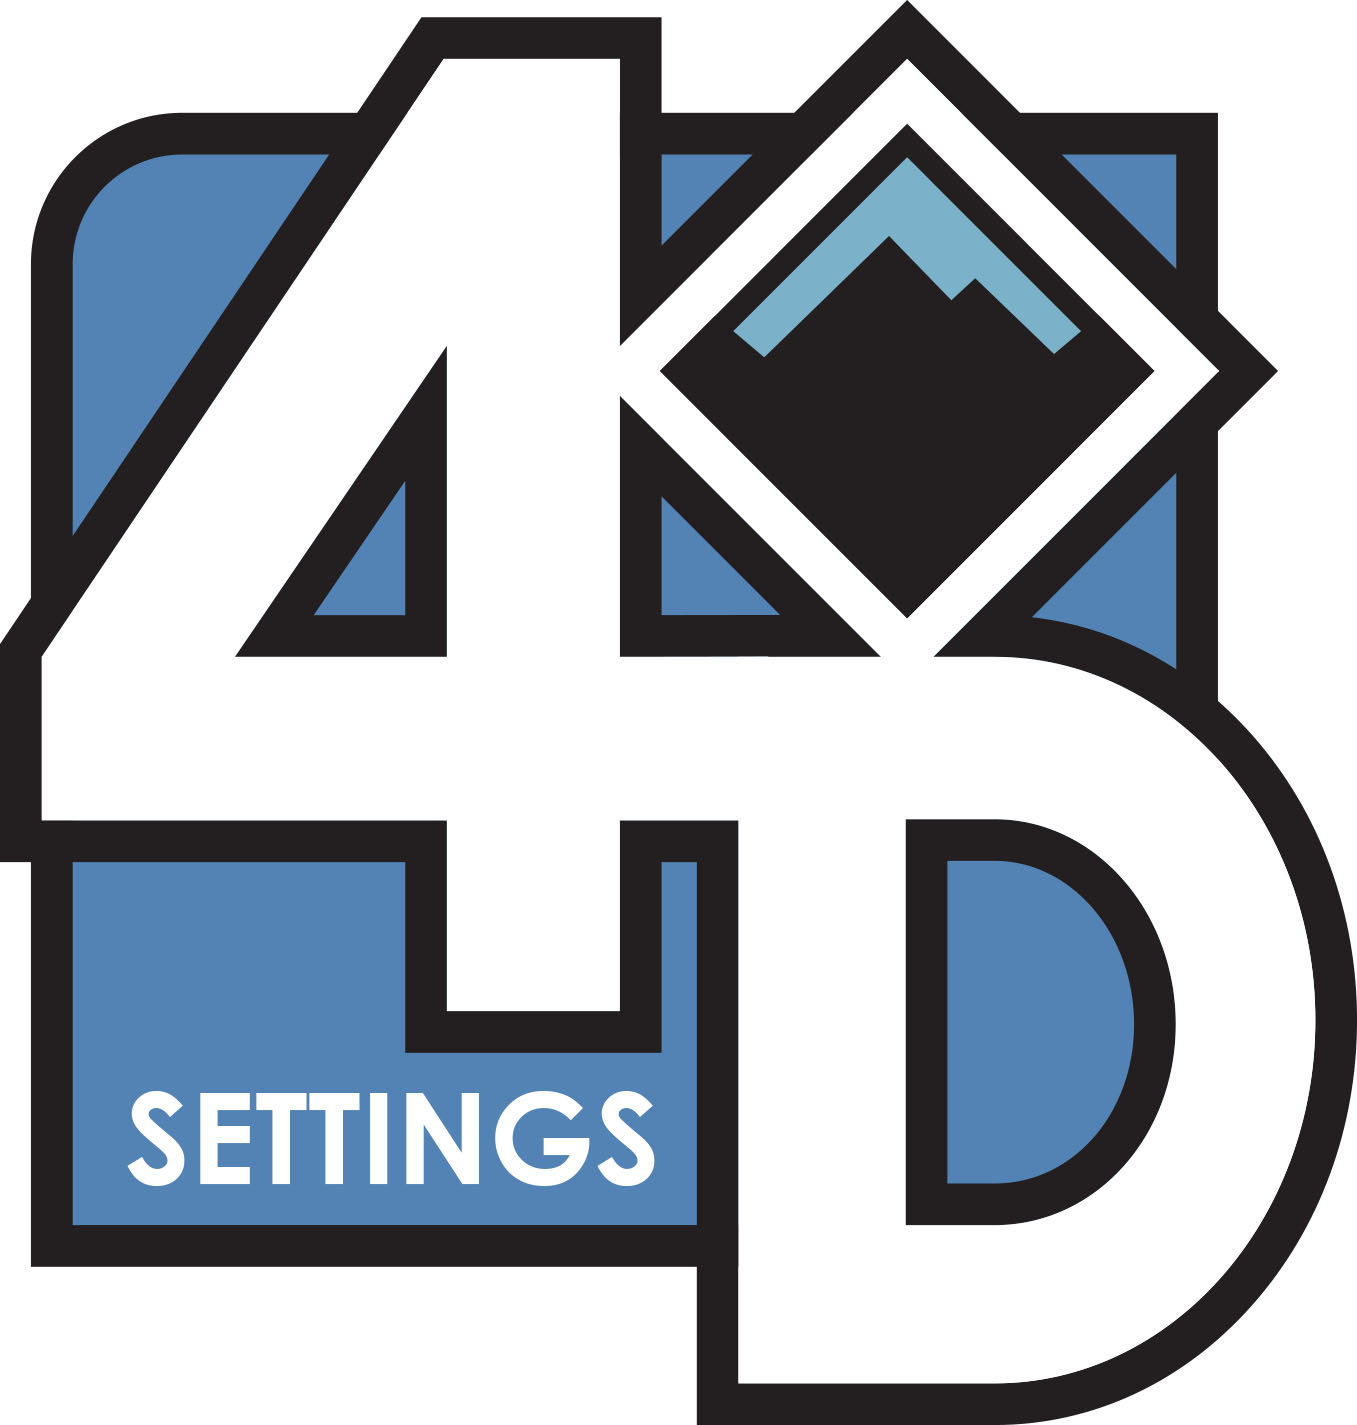 GTM 232 - WizKids Bets Big On New 4D Settings Terrain Sets!